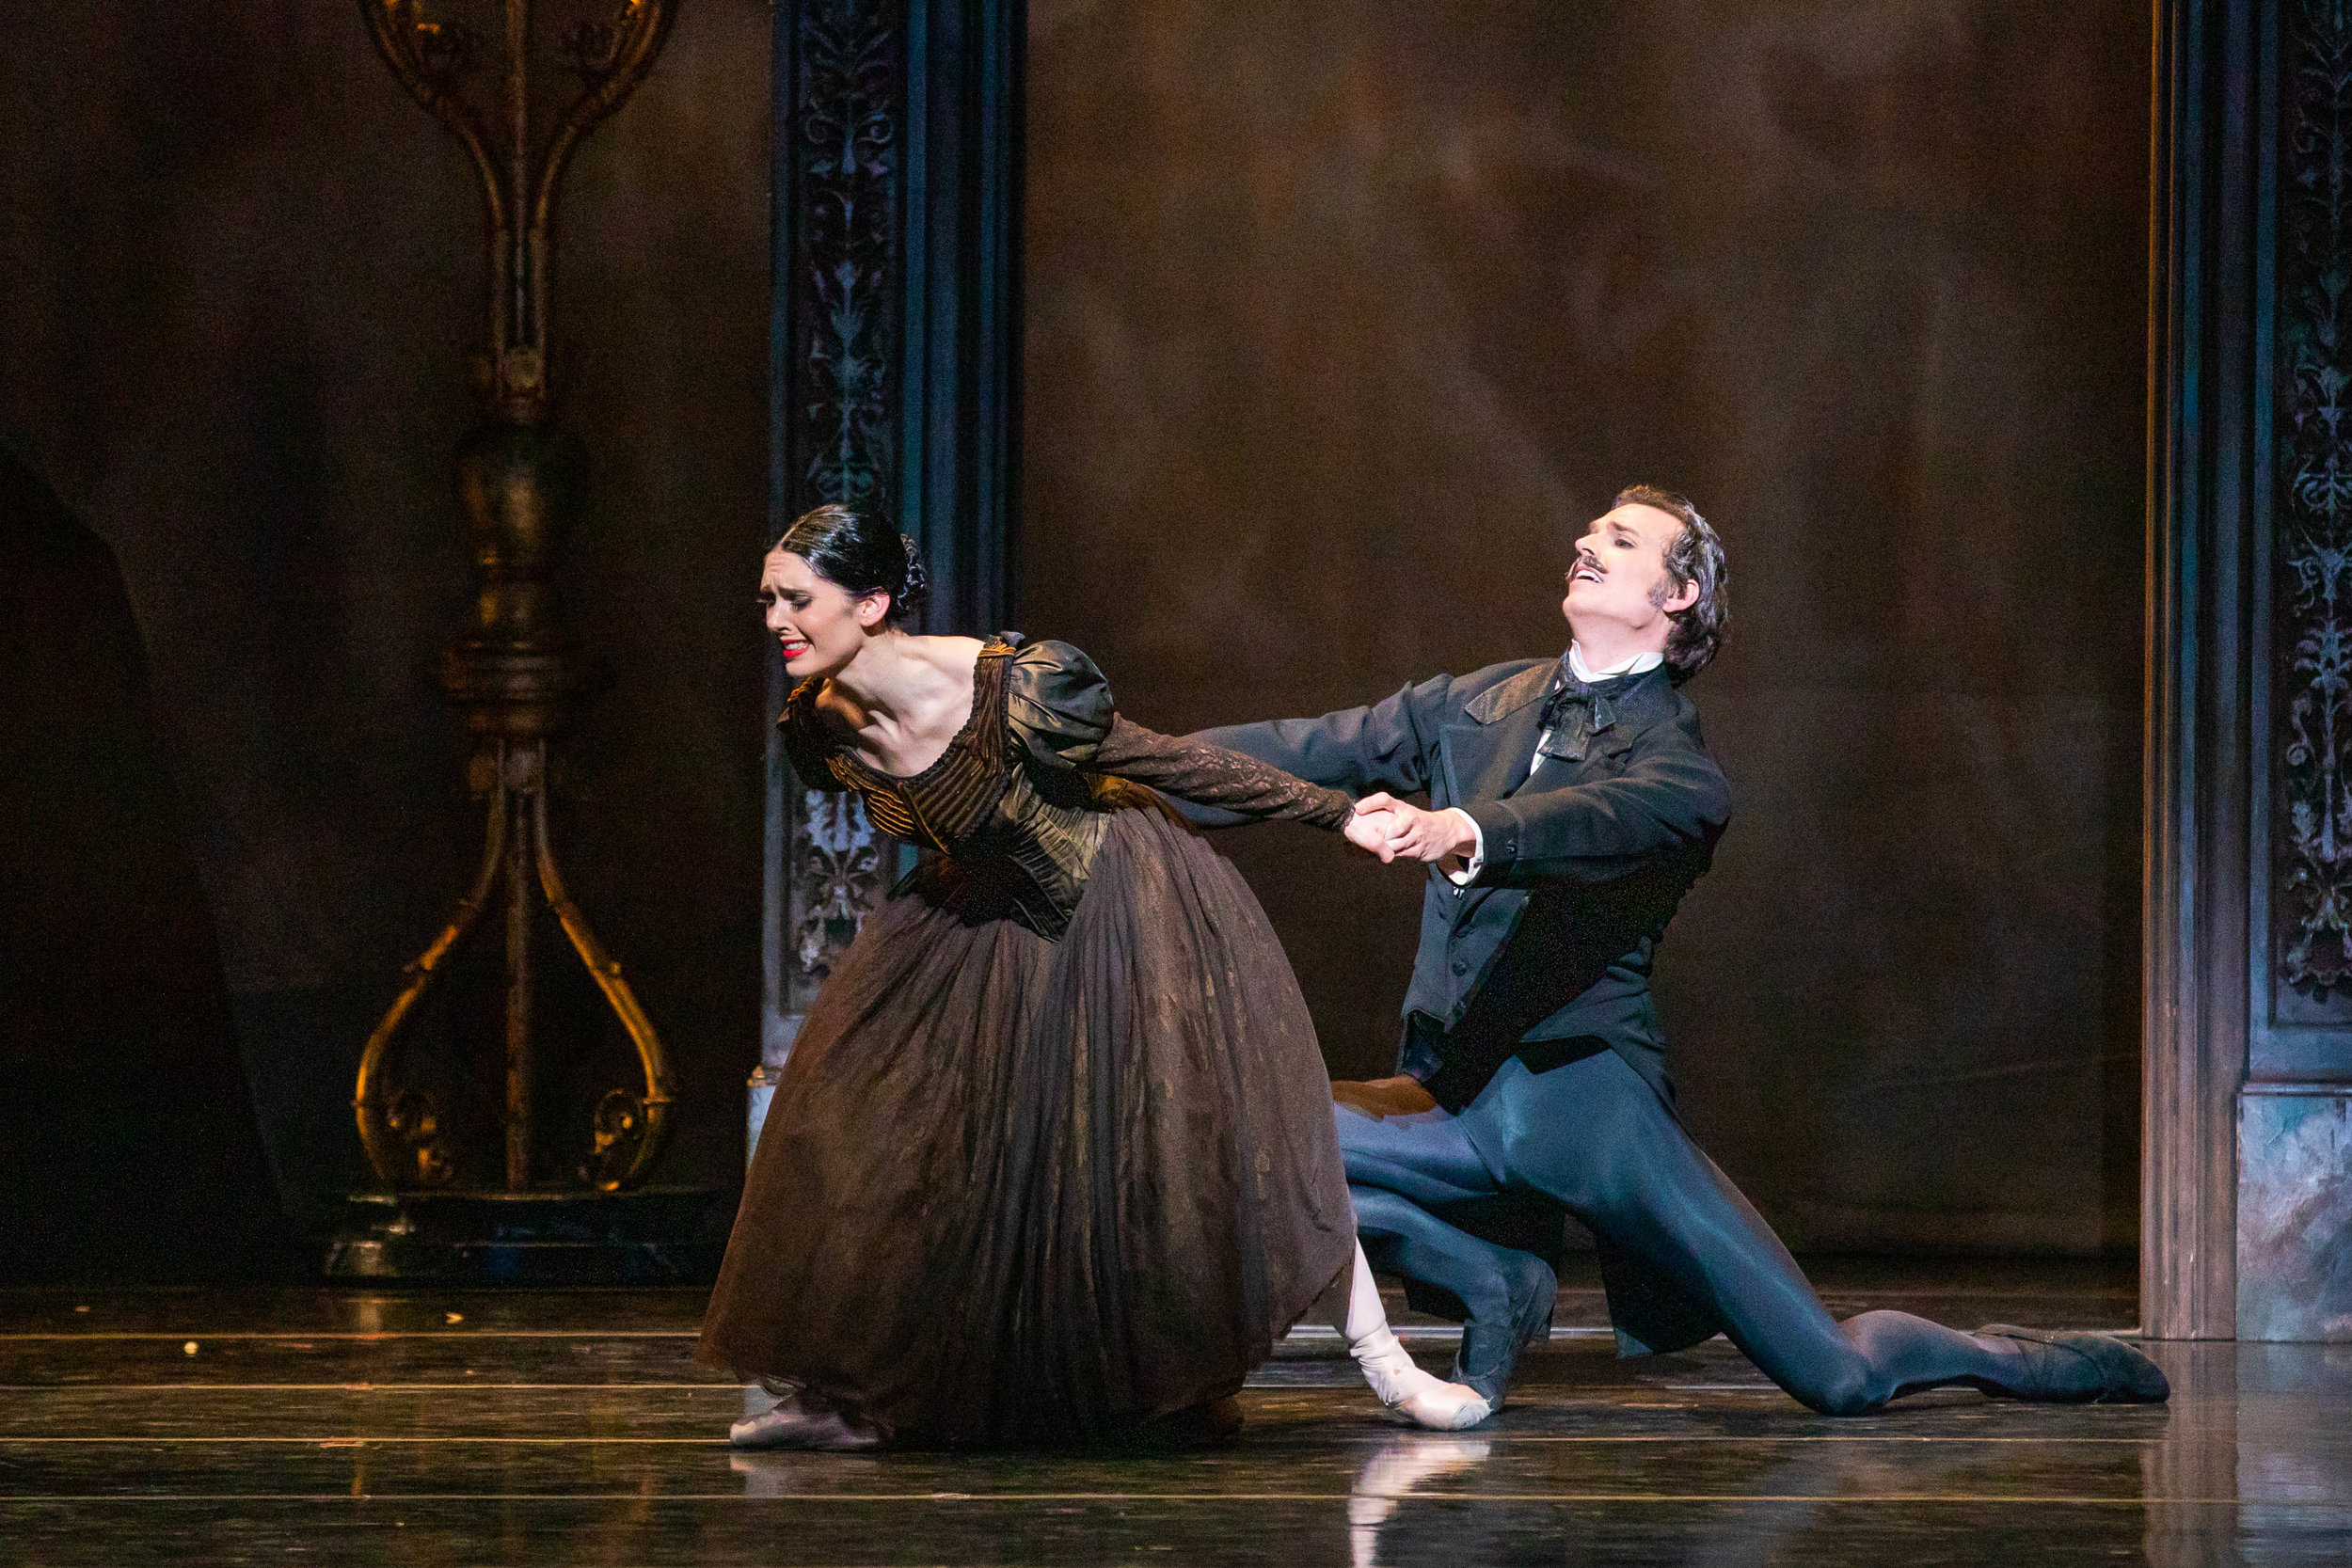 Principal Artists Beckanne Sisk and Chase O'Connell as Tatiana and Onegin. Photo by Beau Pearson.